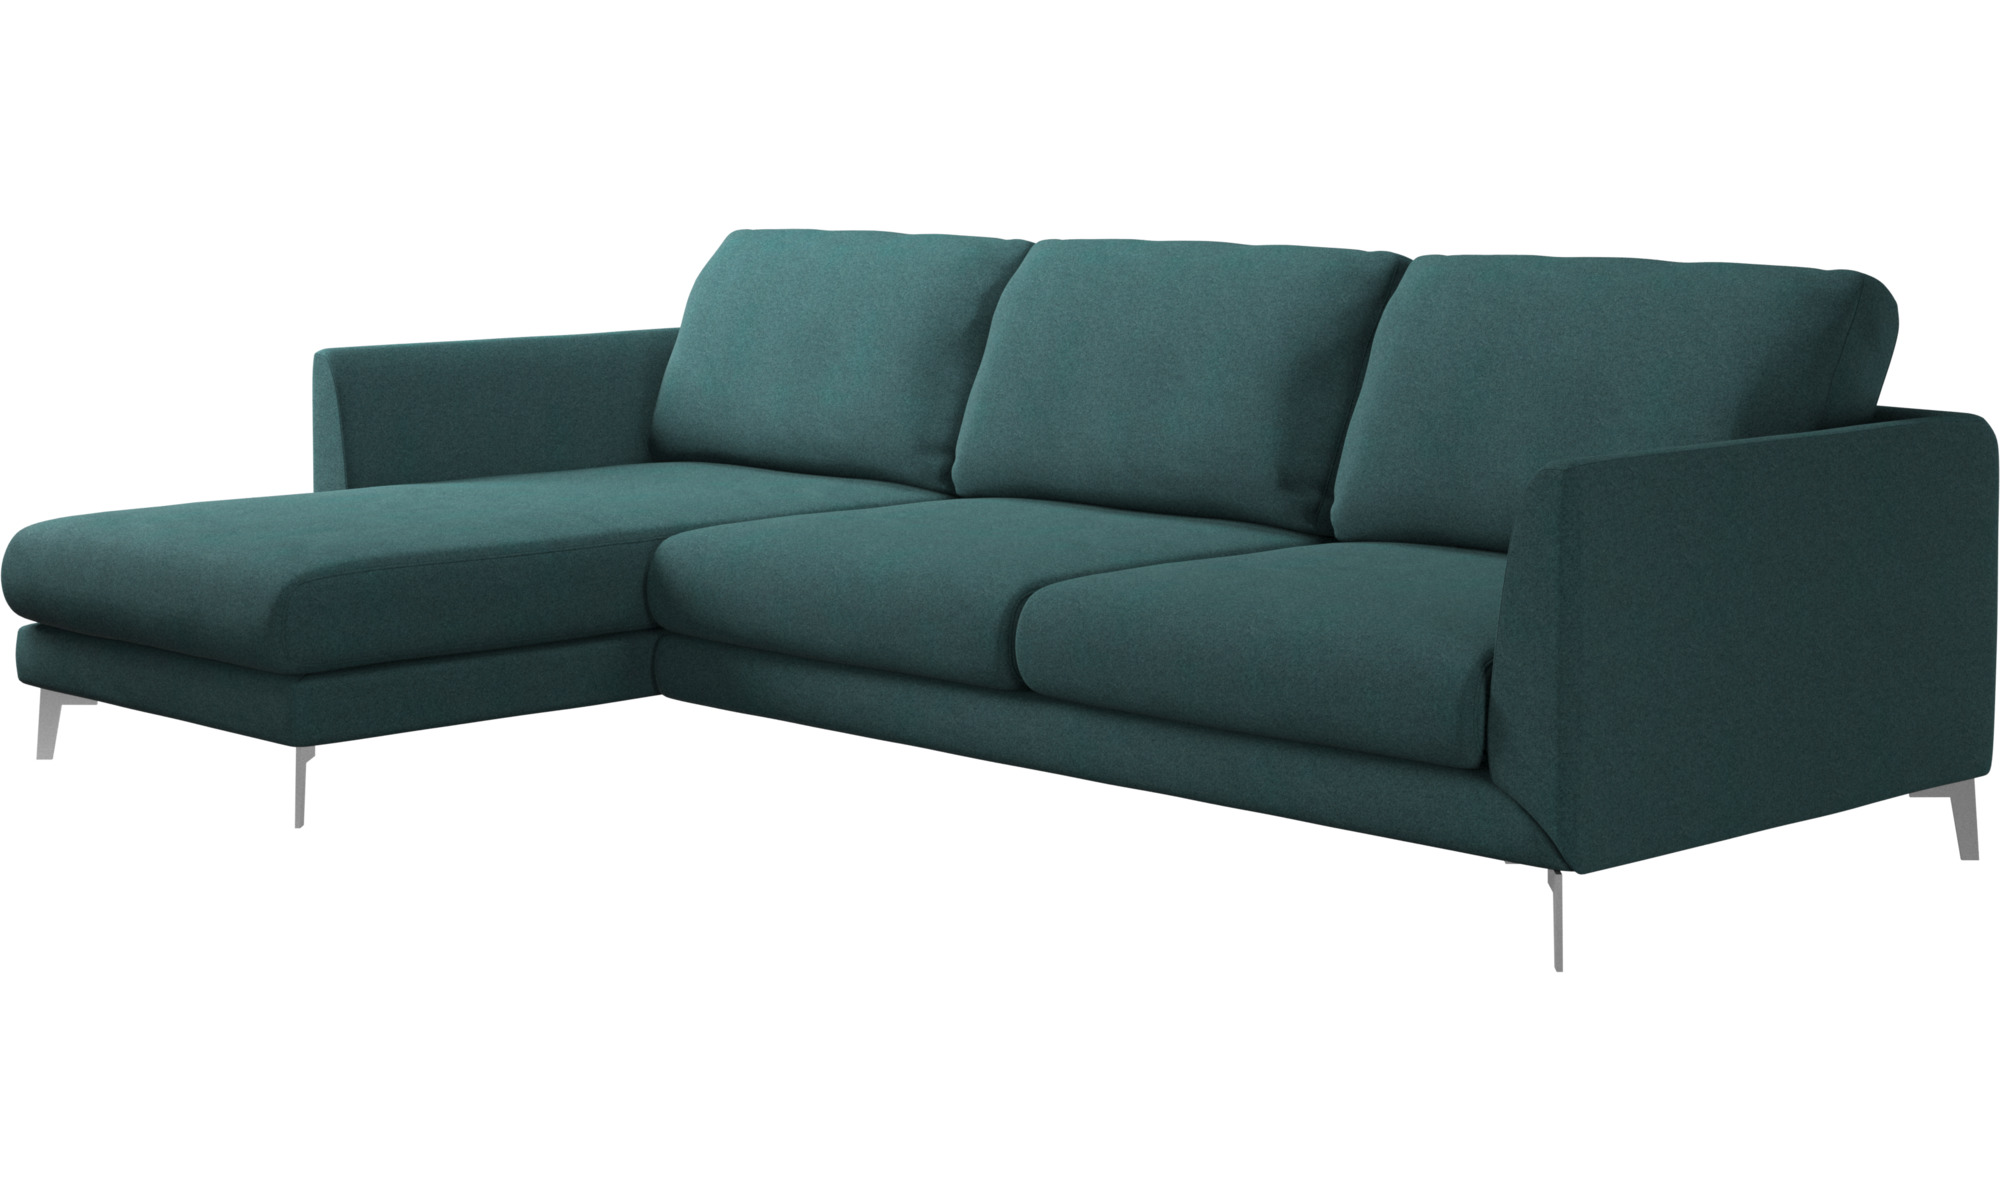 Chaise longue sofas fargo sofa with resting unit boconcept for U sofa med chaiselong